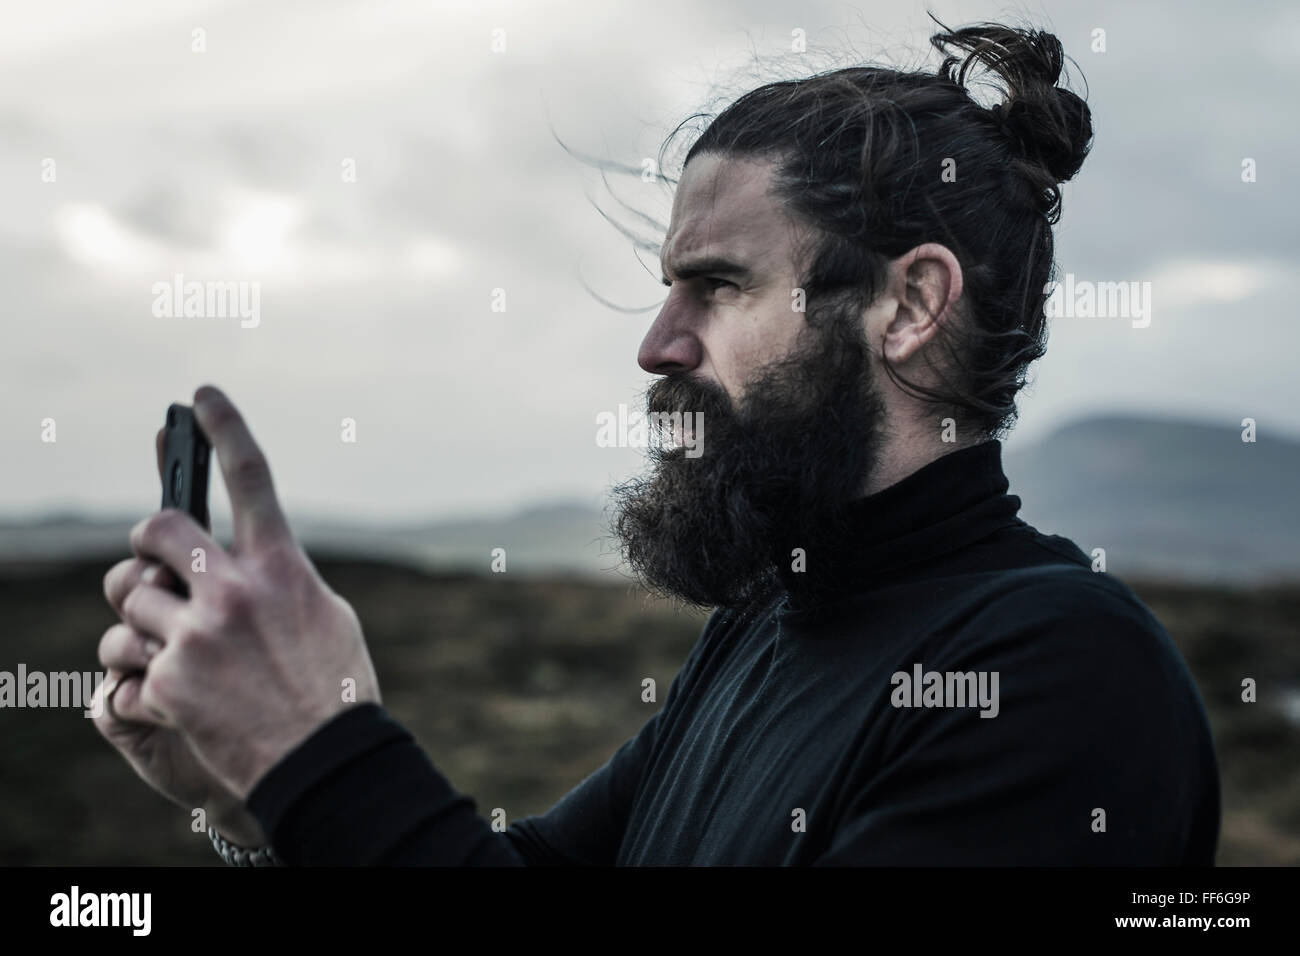 A man taking a photograph with a smart phone. - Stock Image